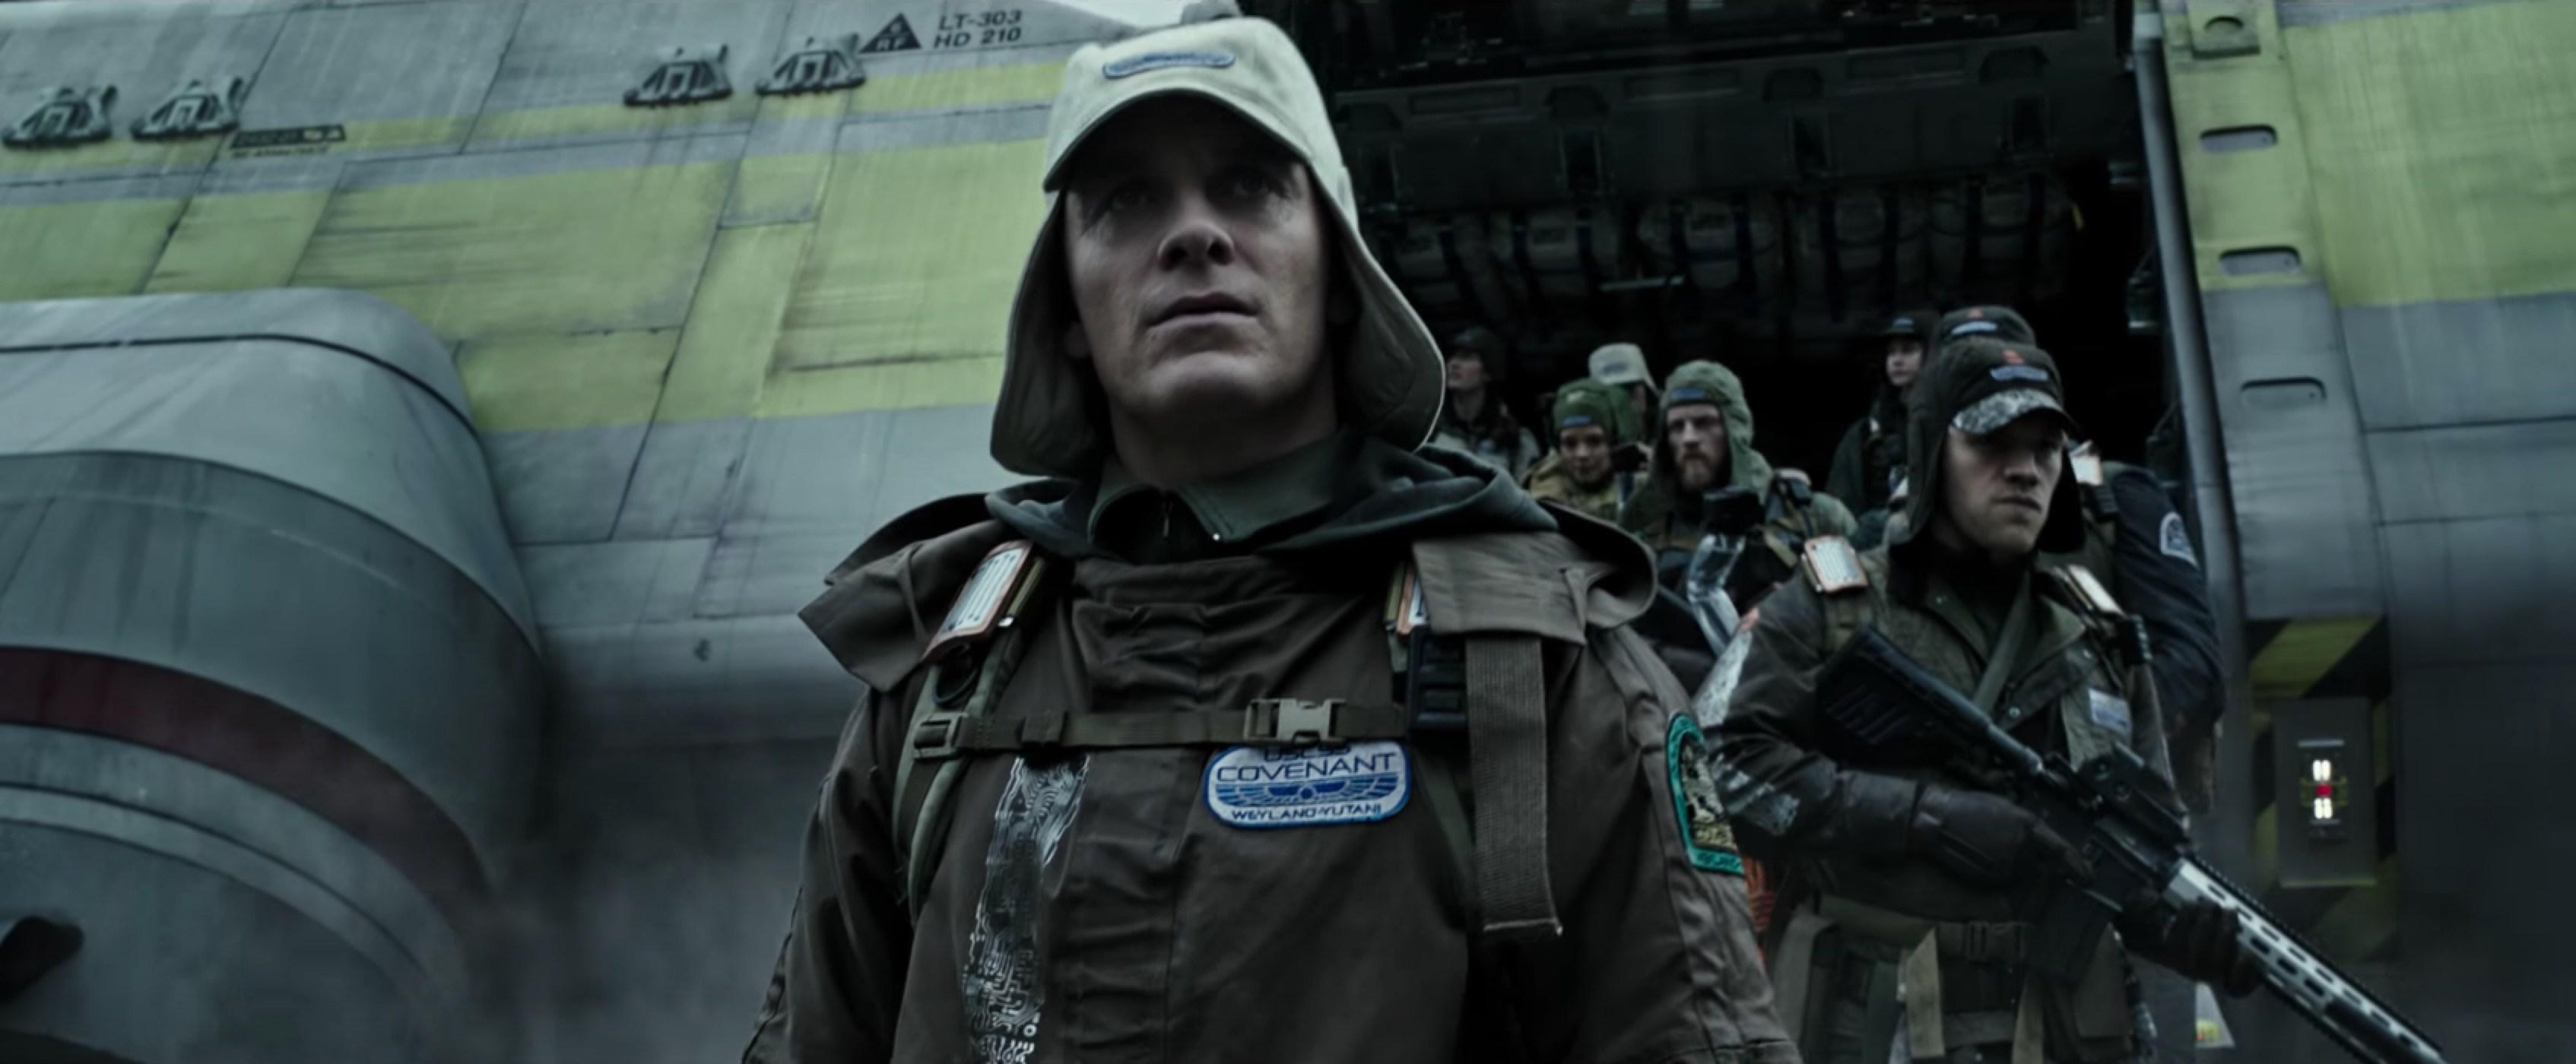 Alien Covenant - Walter